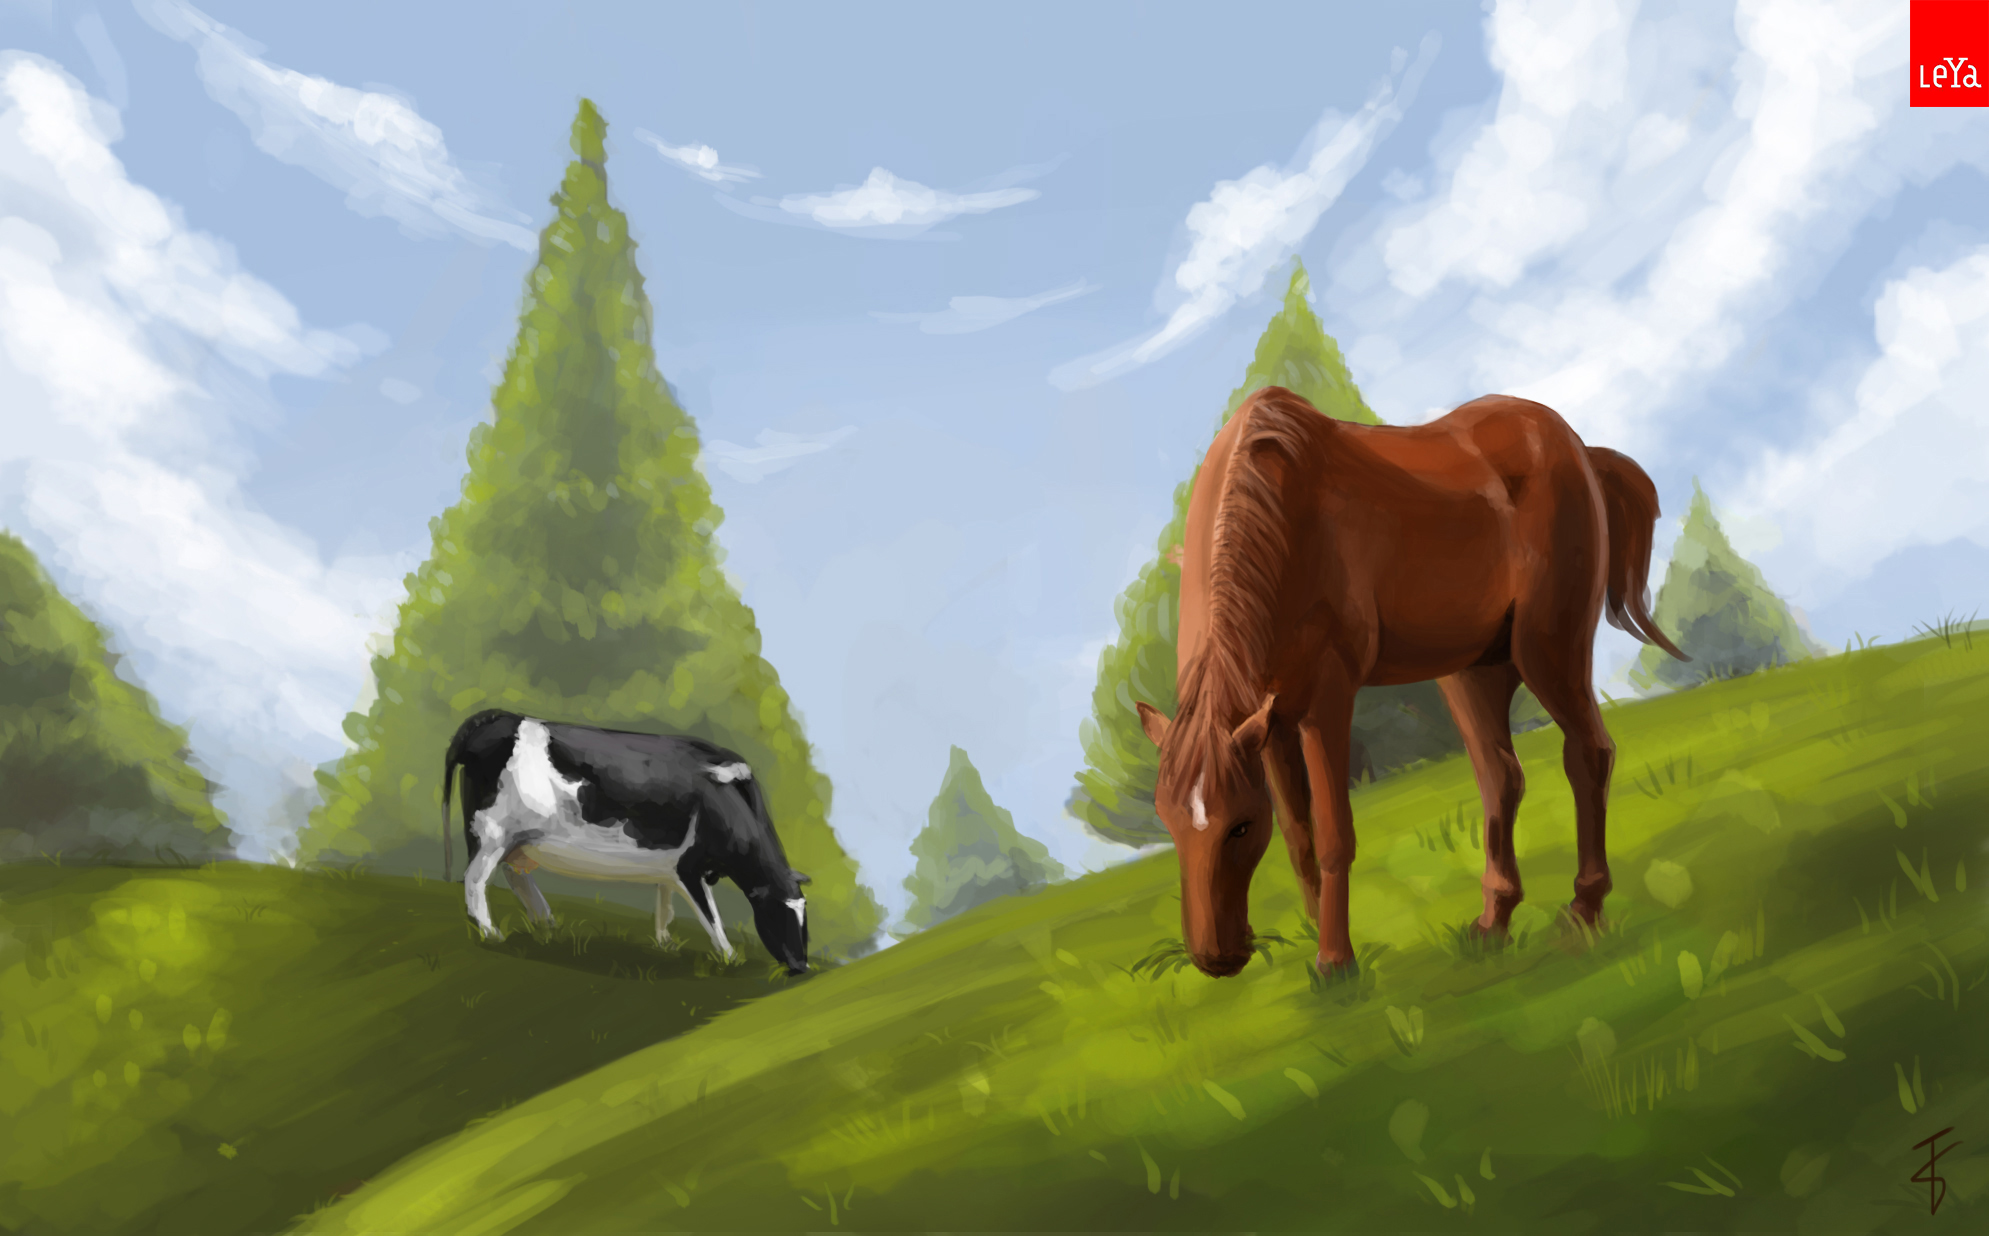 Cow and Horse